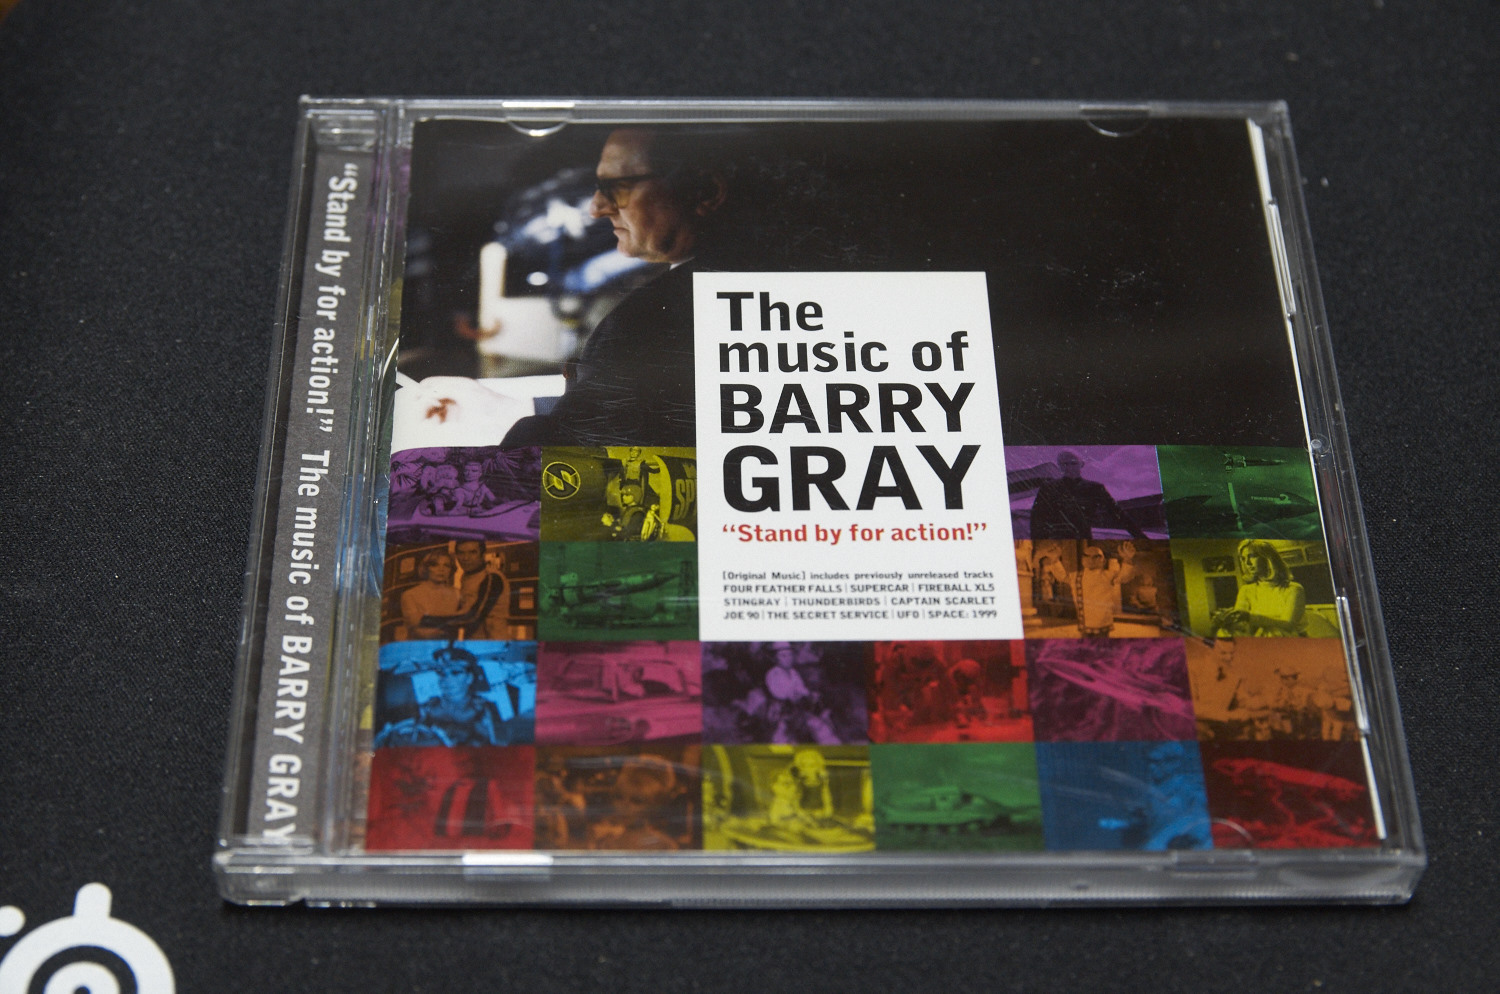 The music of BARRY GRAY